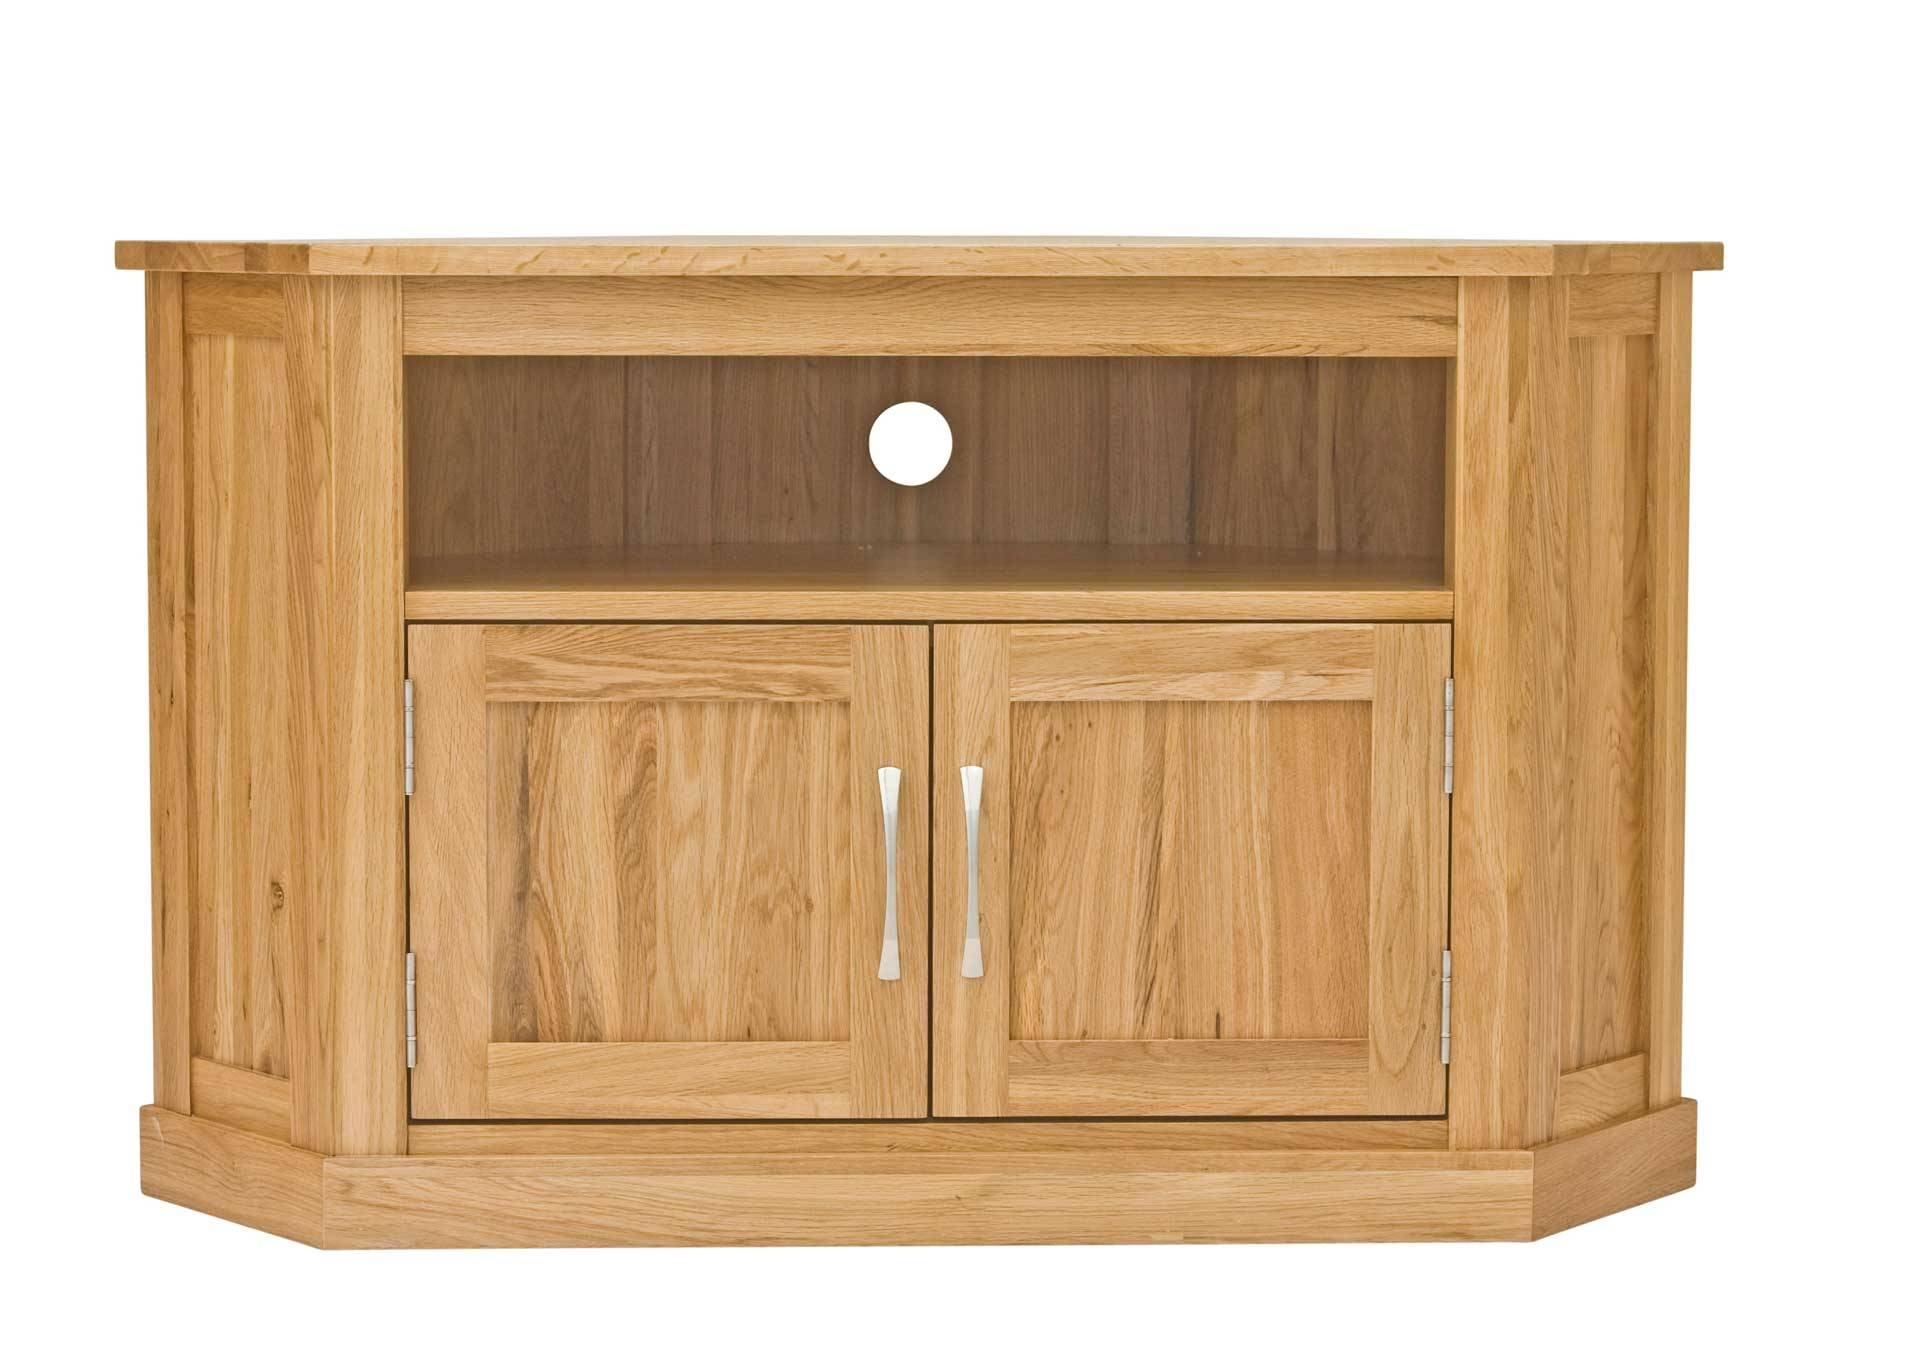 Classic Oak Corner Television Cabinet | Hampshire Furniture With Corner Tv Cabinets (View 4 of 15)